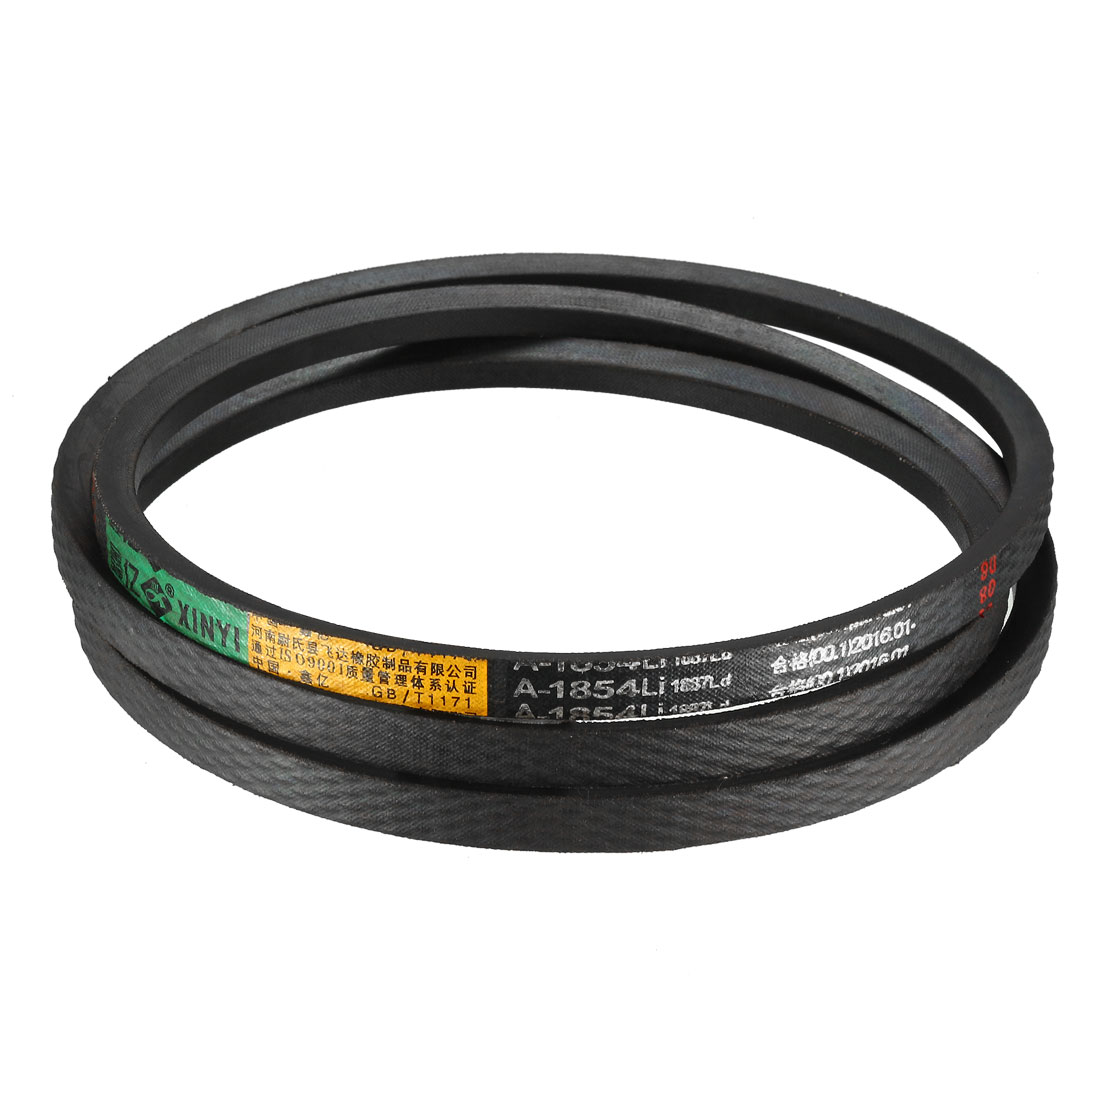 A-1854/A73 Drive V-Belt Inner Girth 73-inch Industrial Power Rubber Belt